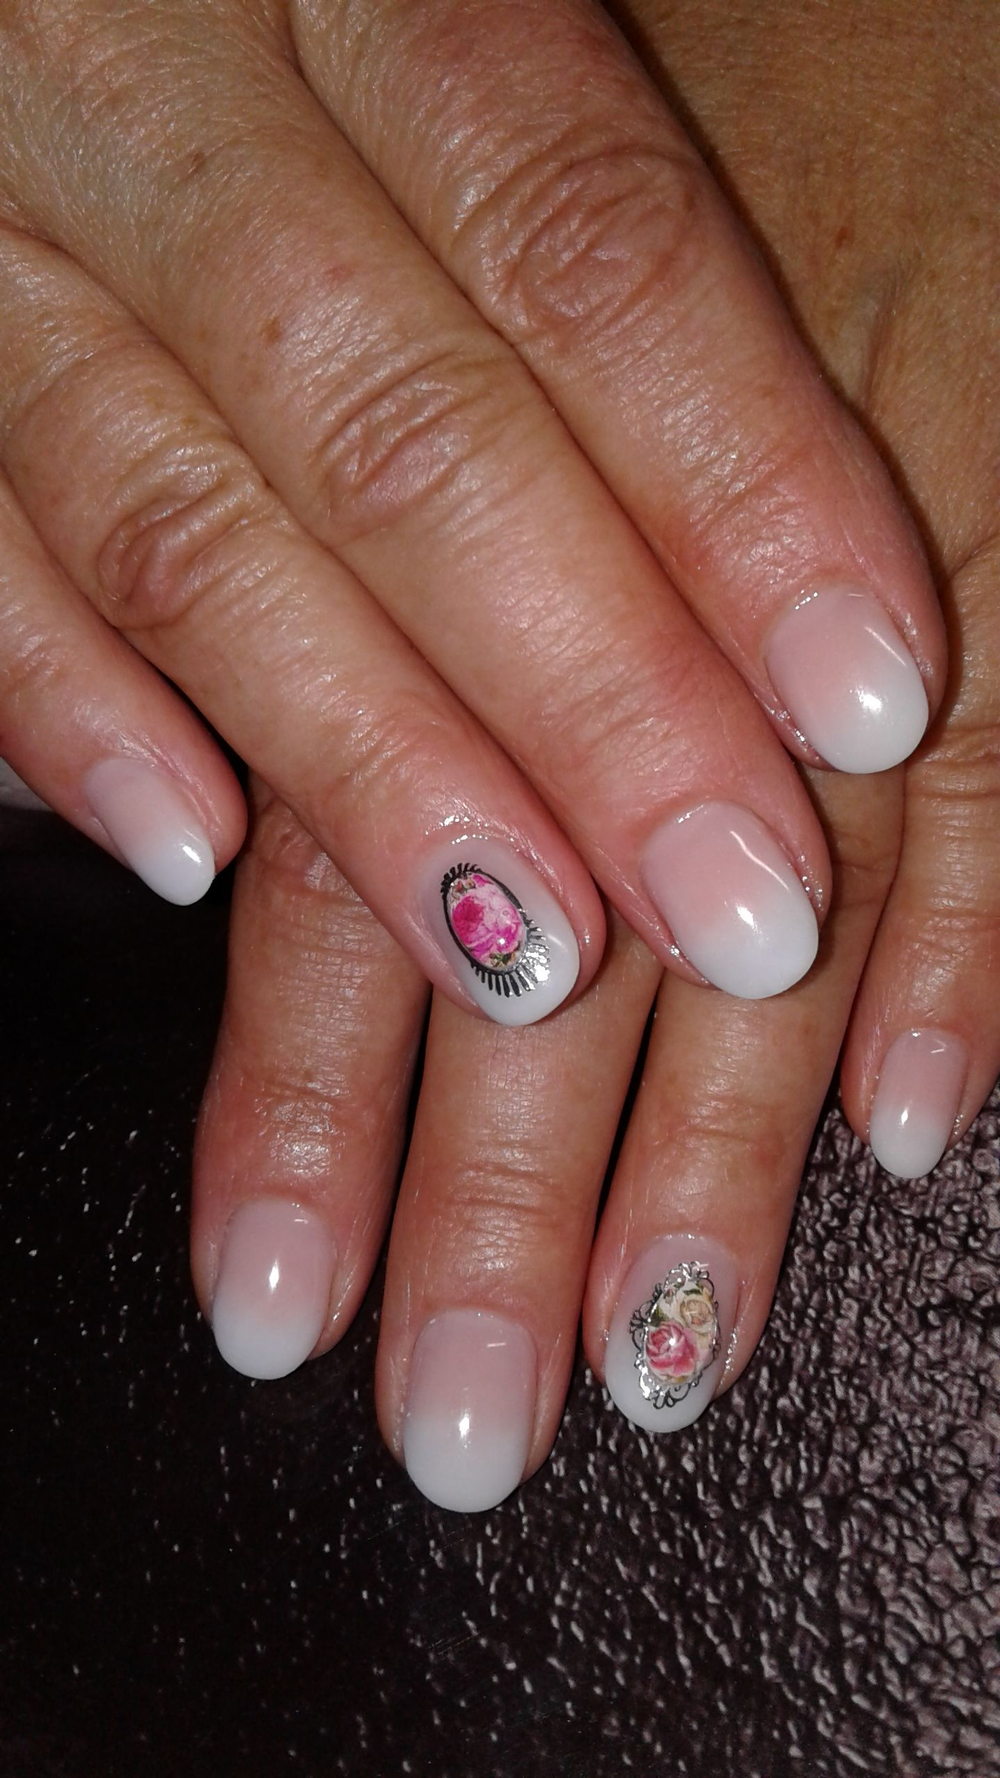 <p>At Nagelatelier Exquisit, older clients typically opt for oval-shaped classic looks with minimal nail art.</p>